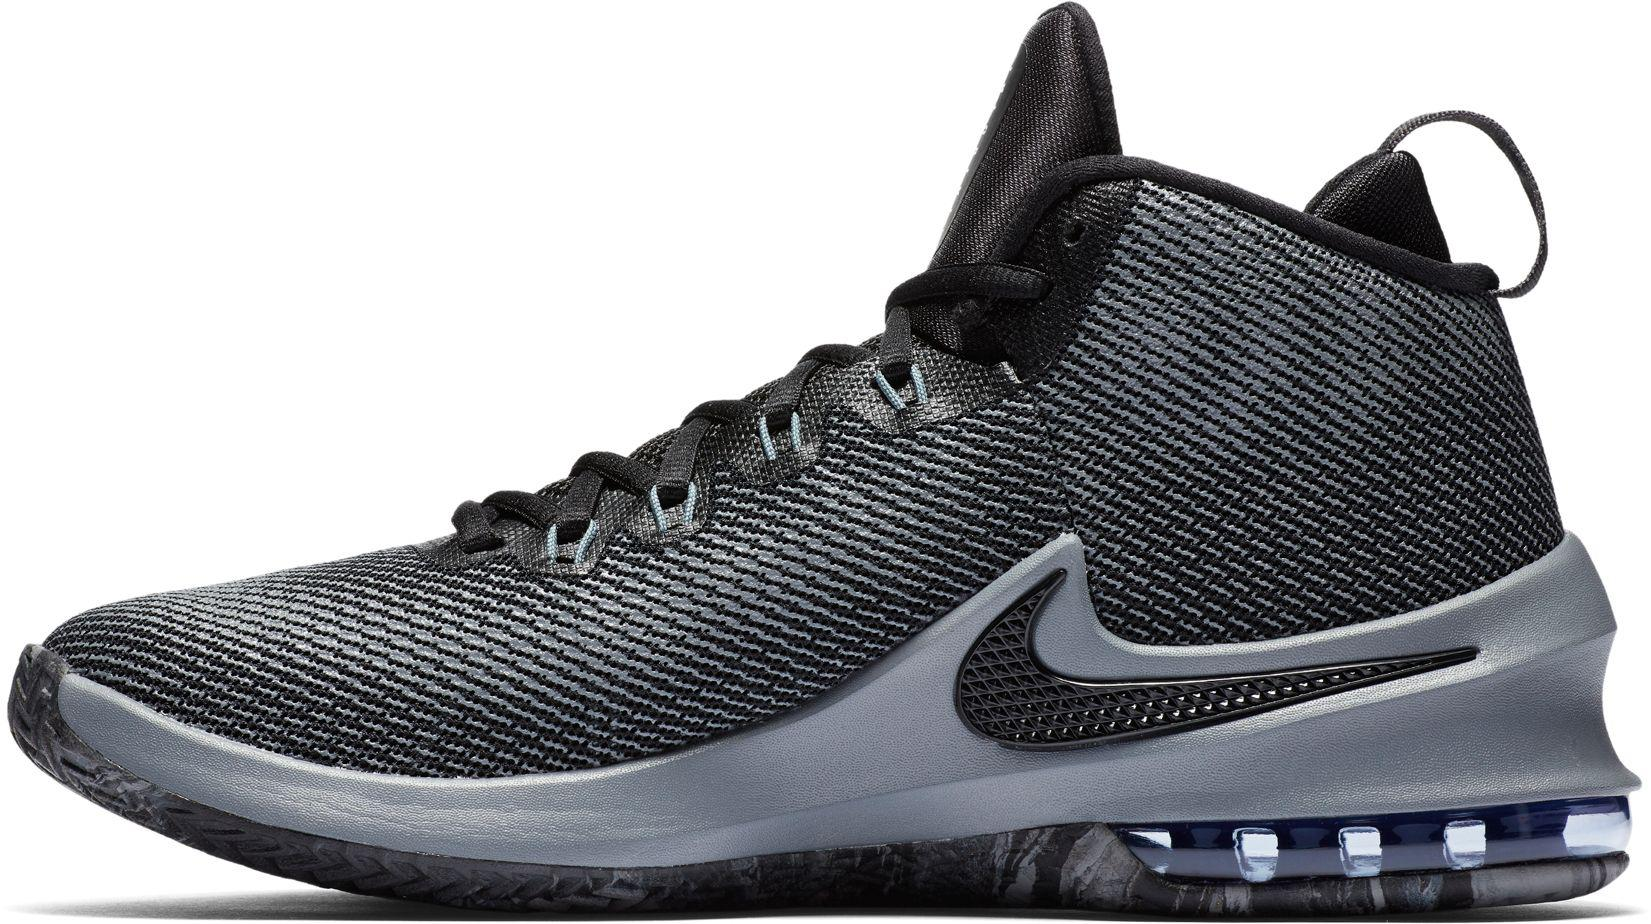 ec6fde490d7d Nike - Black Air Max Infuriate Mid Premium Basketball Shoes for Men - Lyst